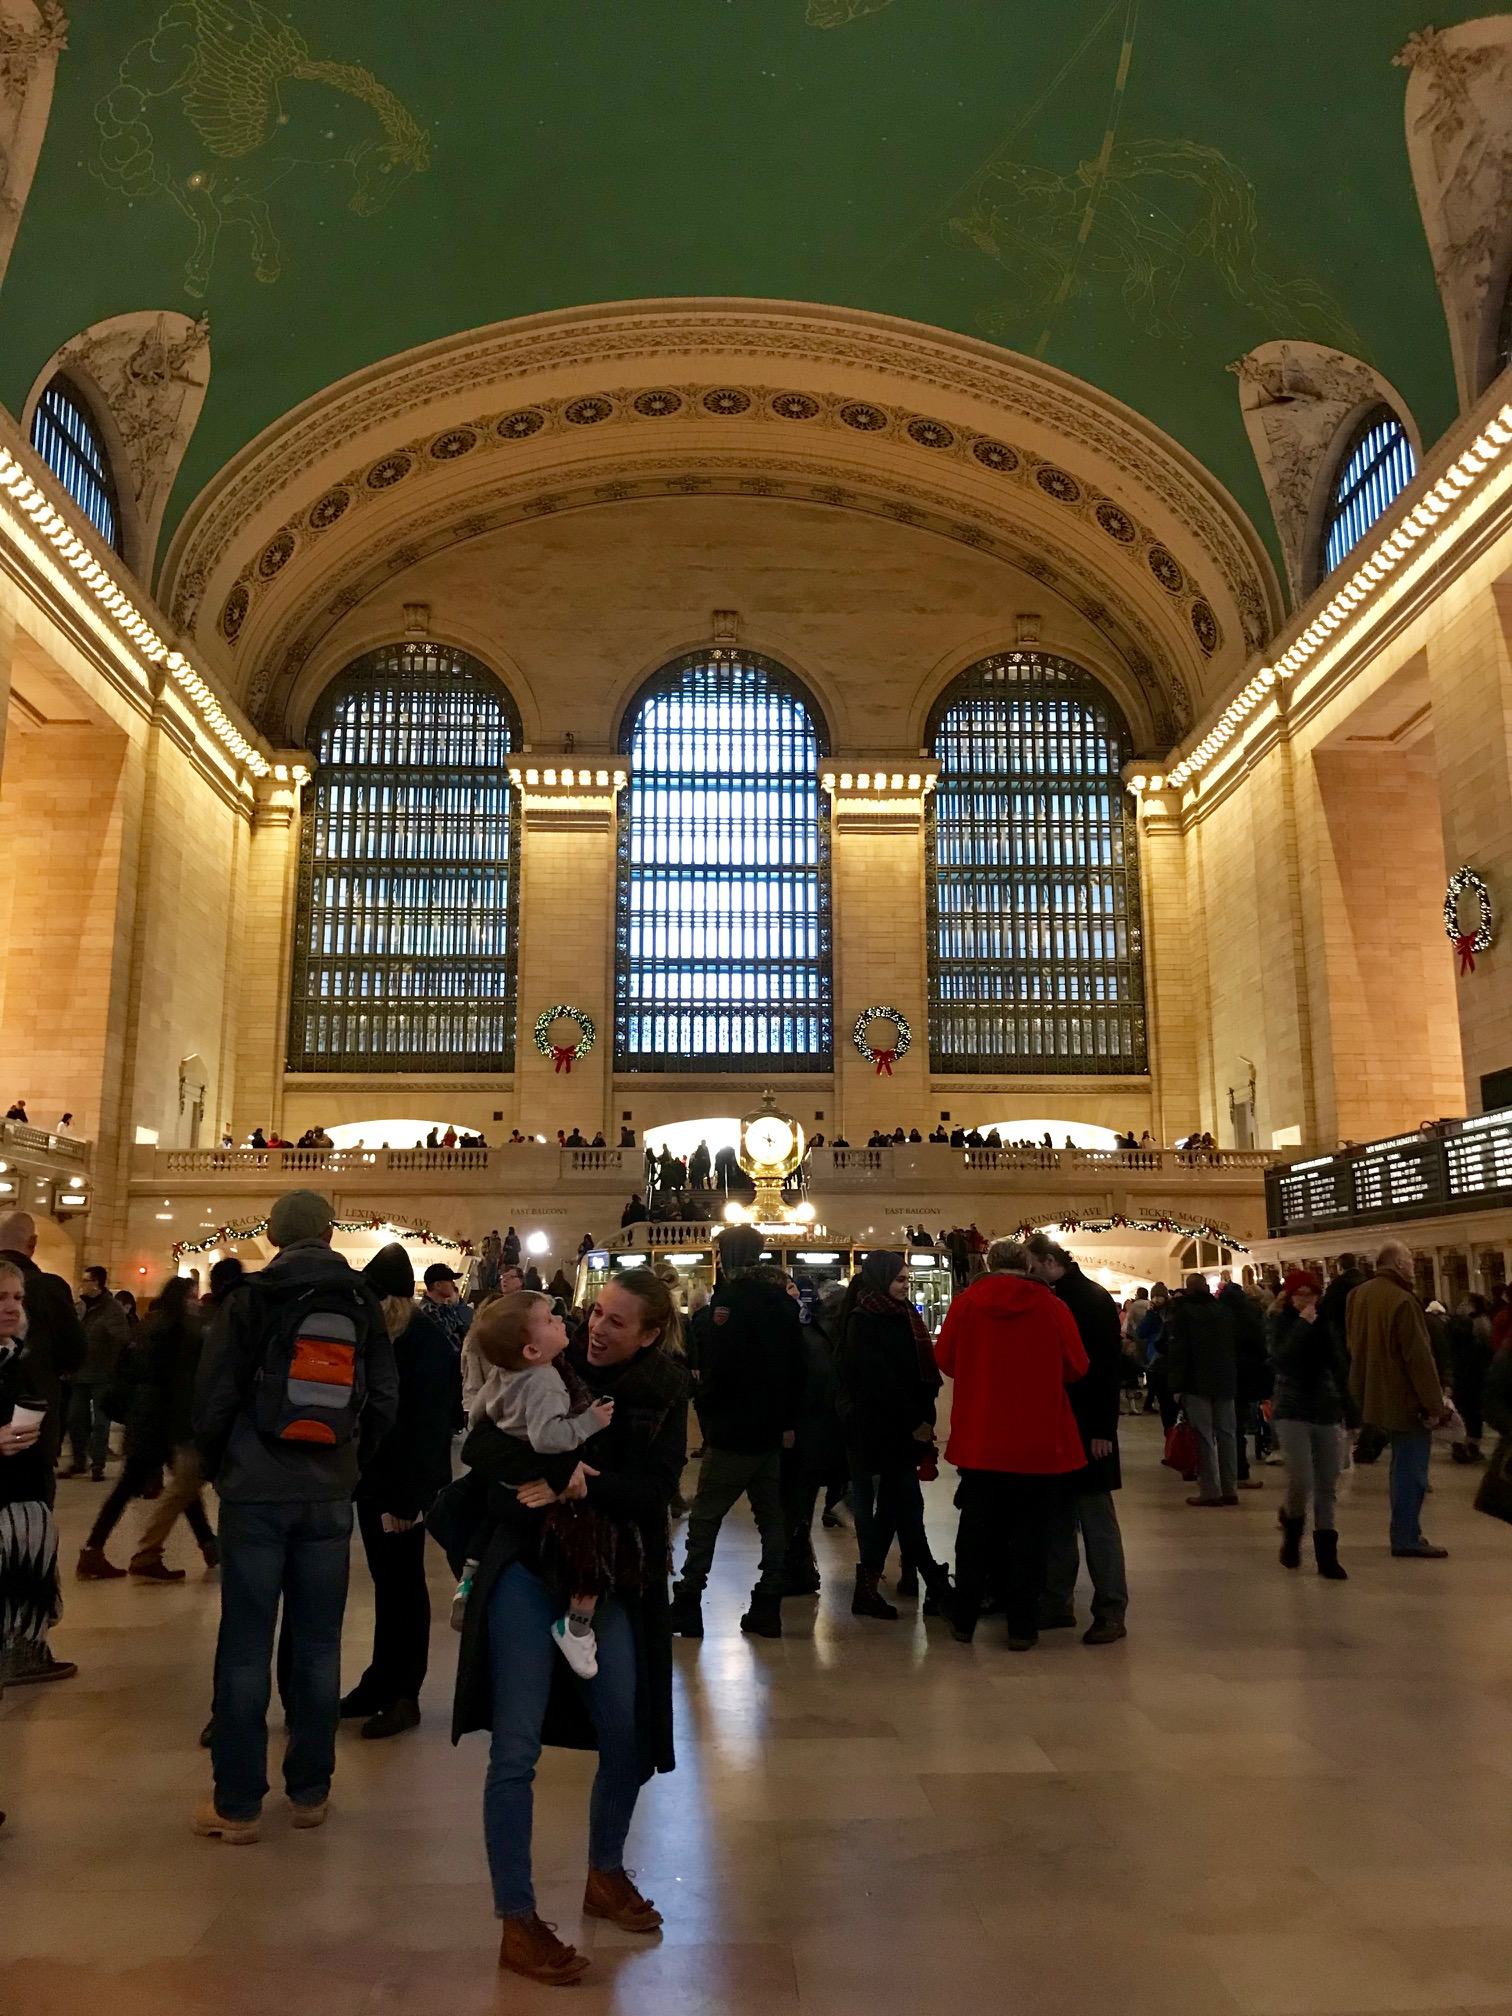 Jess of Used York City interview in grand central station